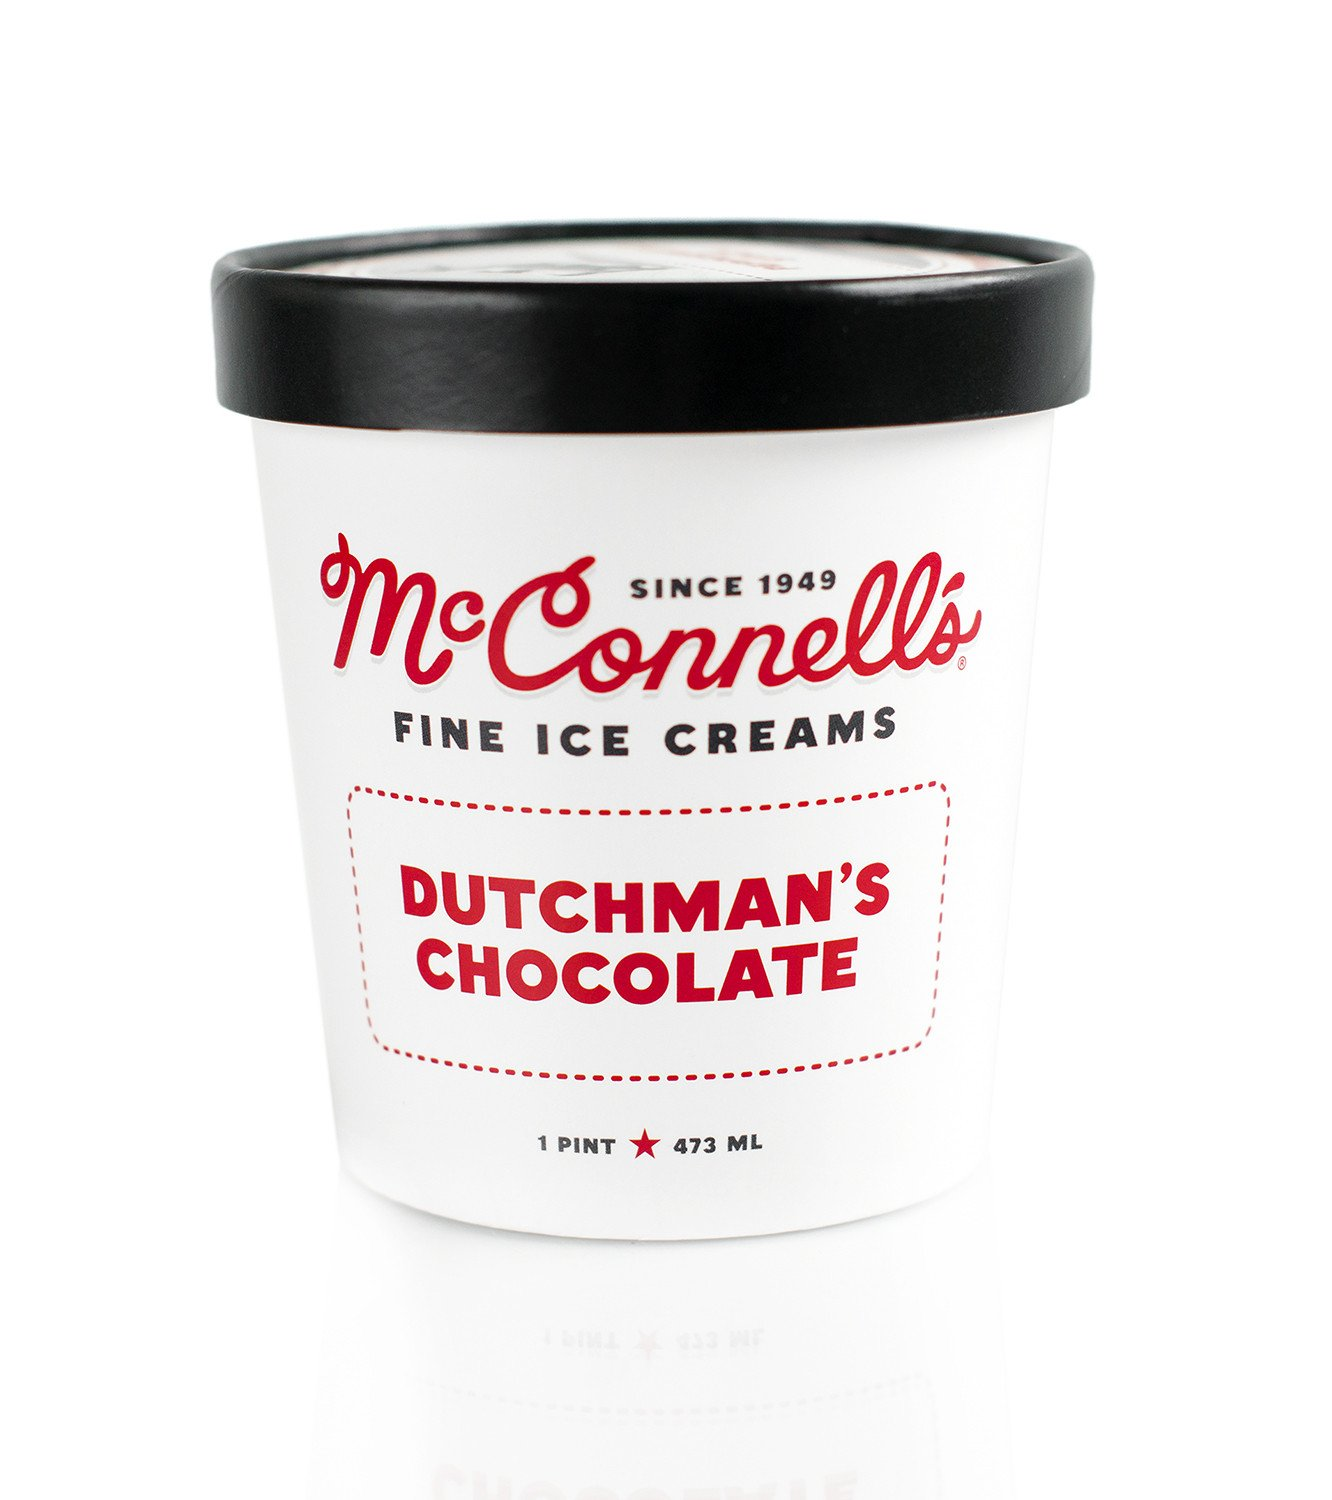 dutchmanschocolate-online-pint.jpg